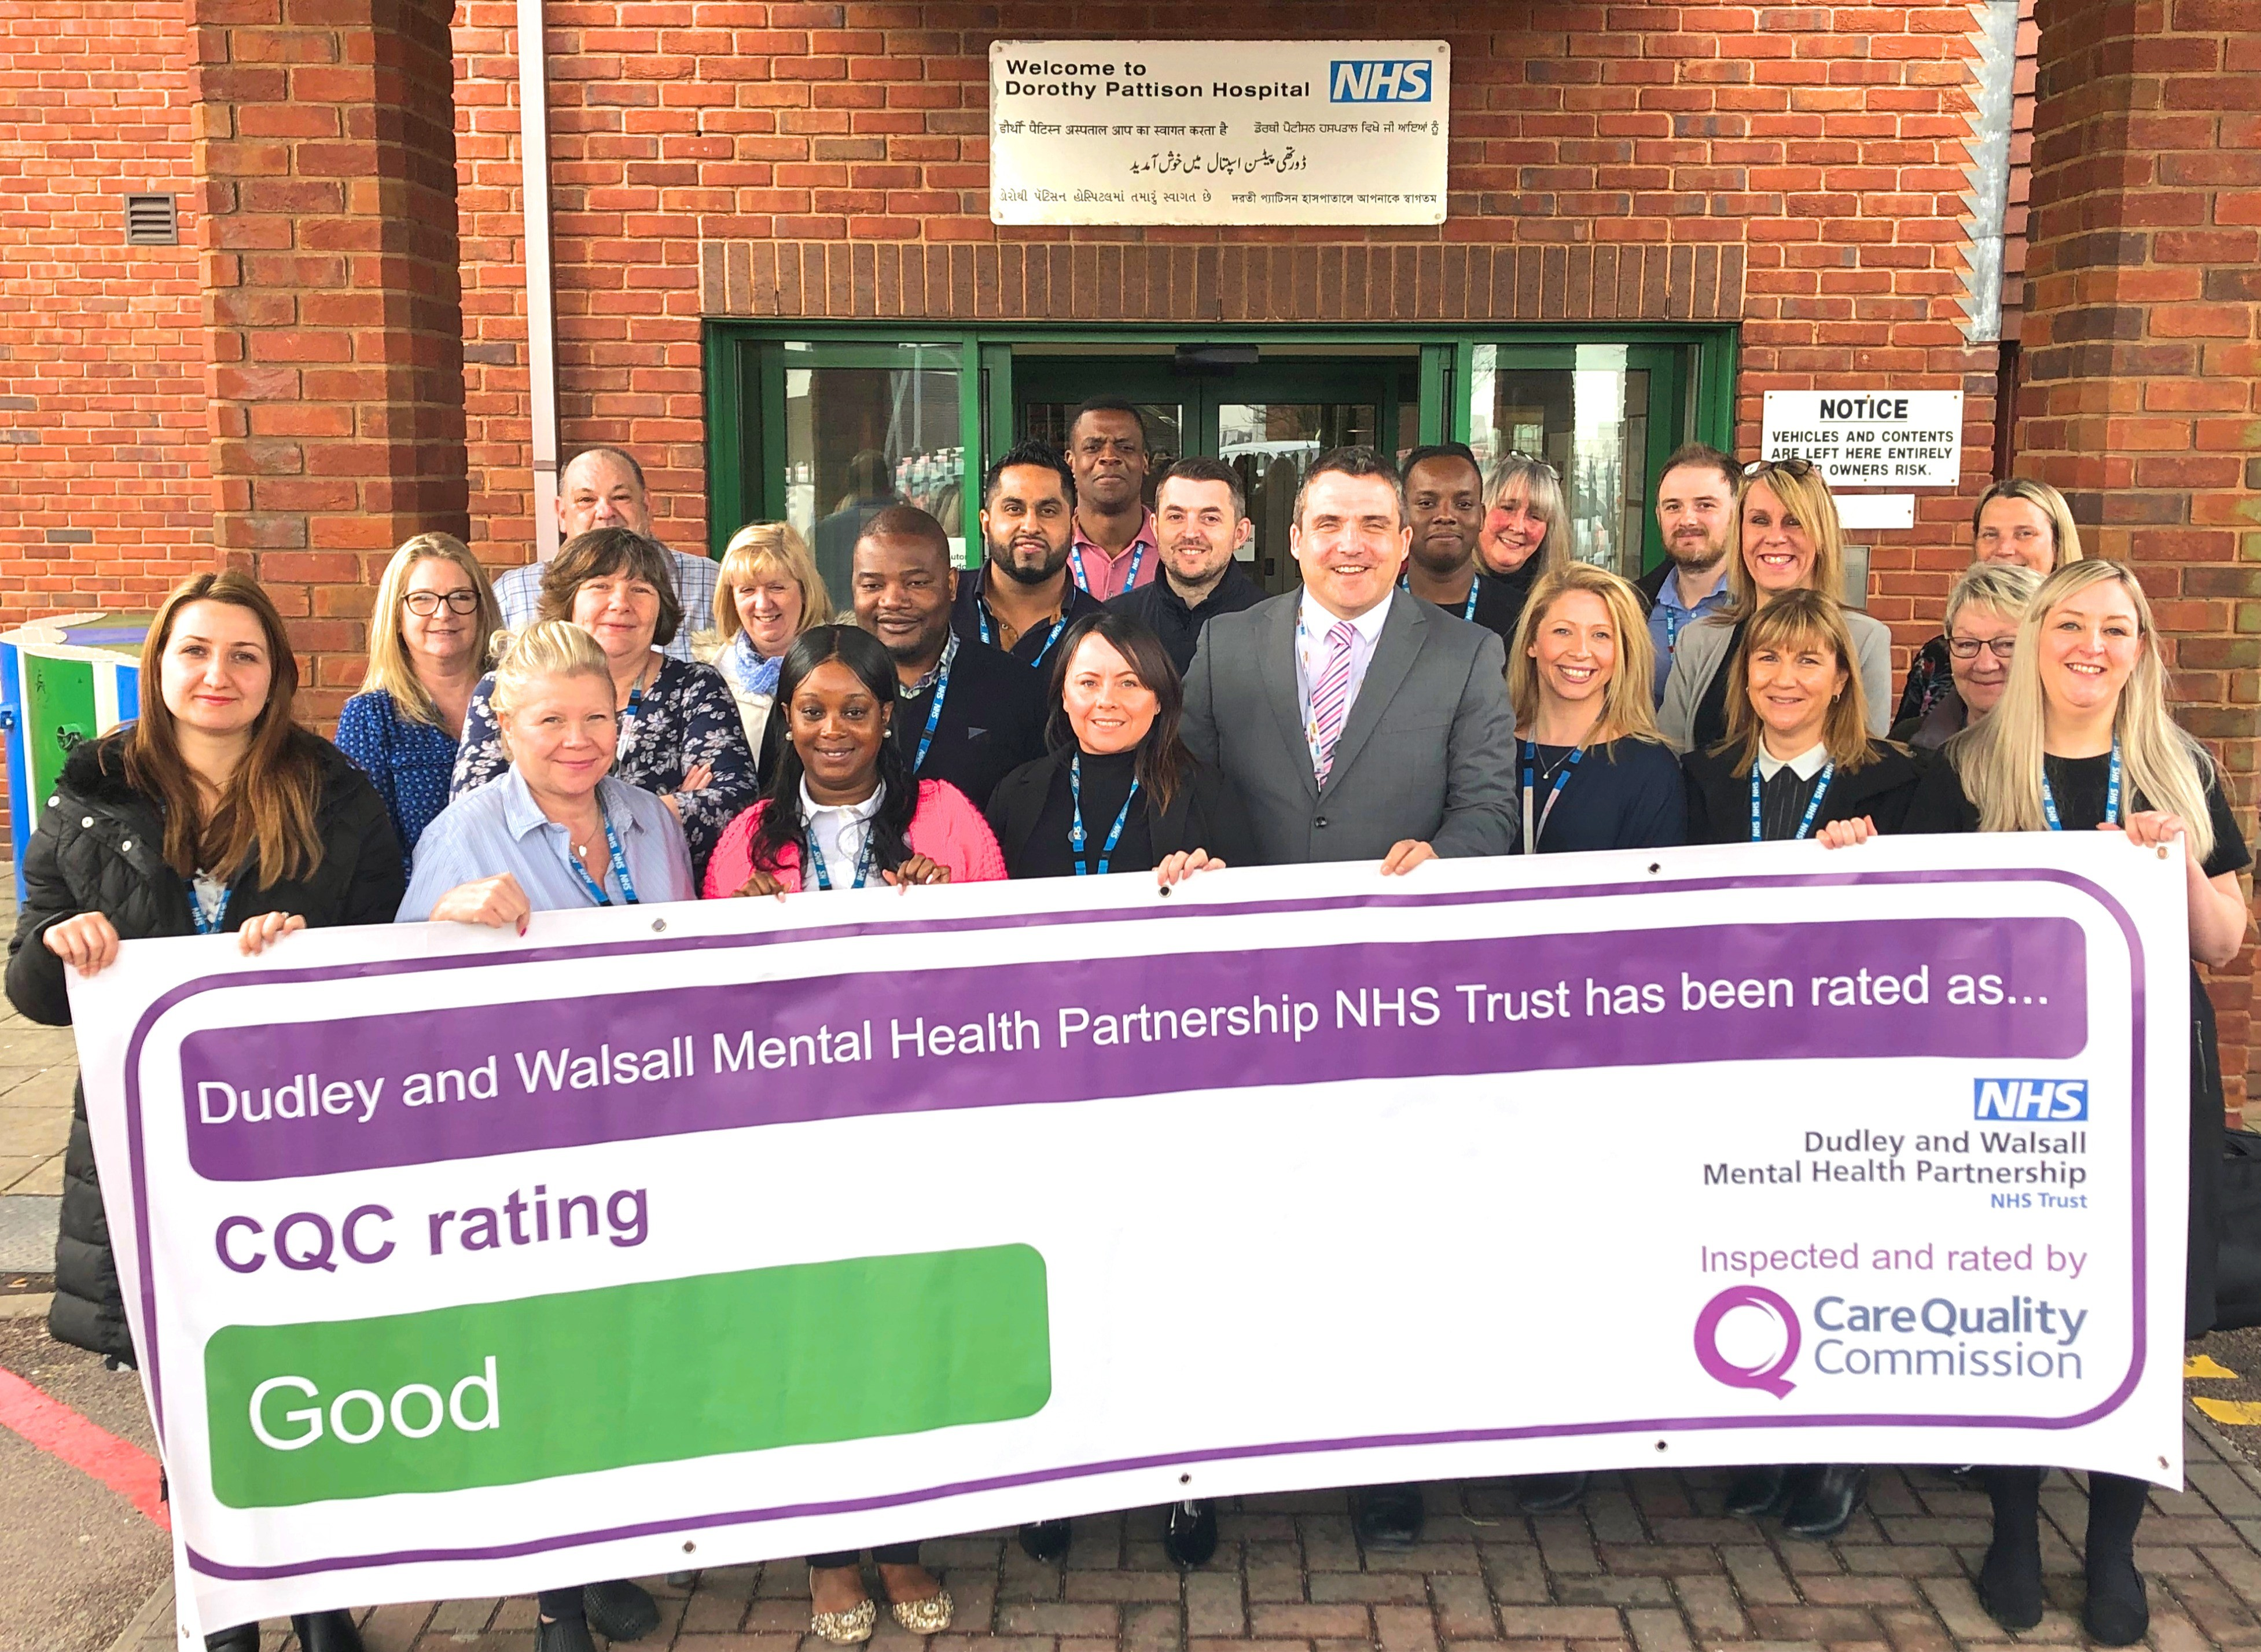 Dudley And Walsall Mental Health Partnership Nhs Trust Linkedin